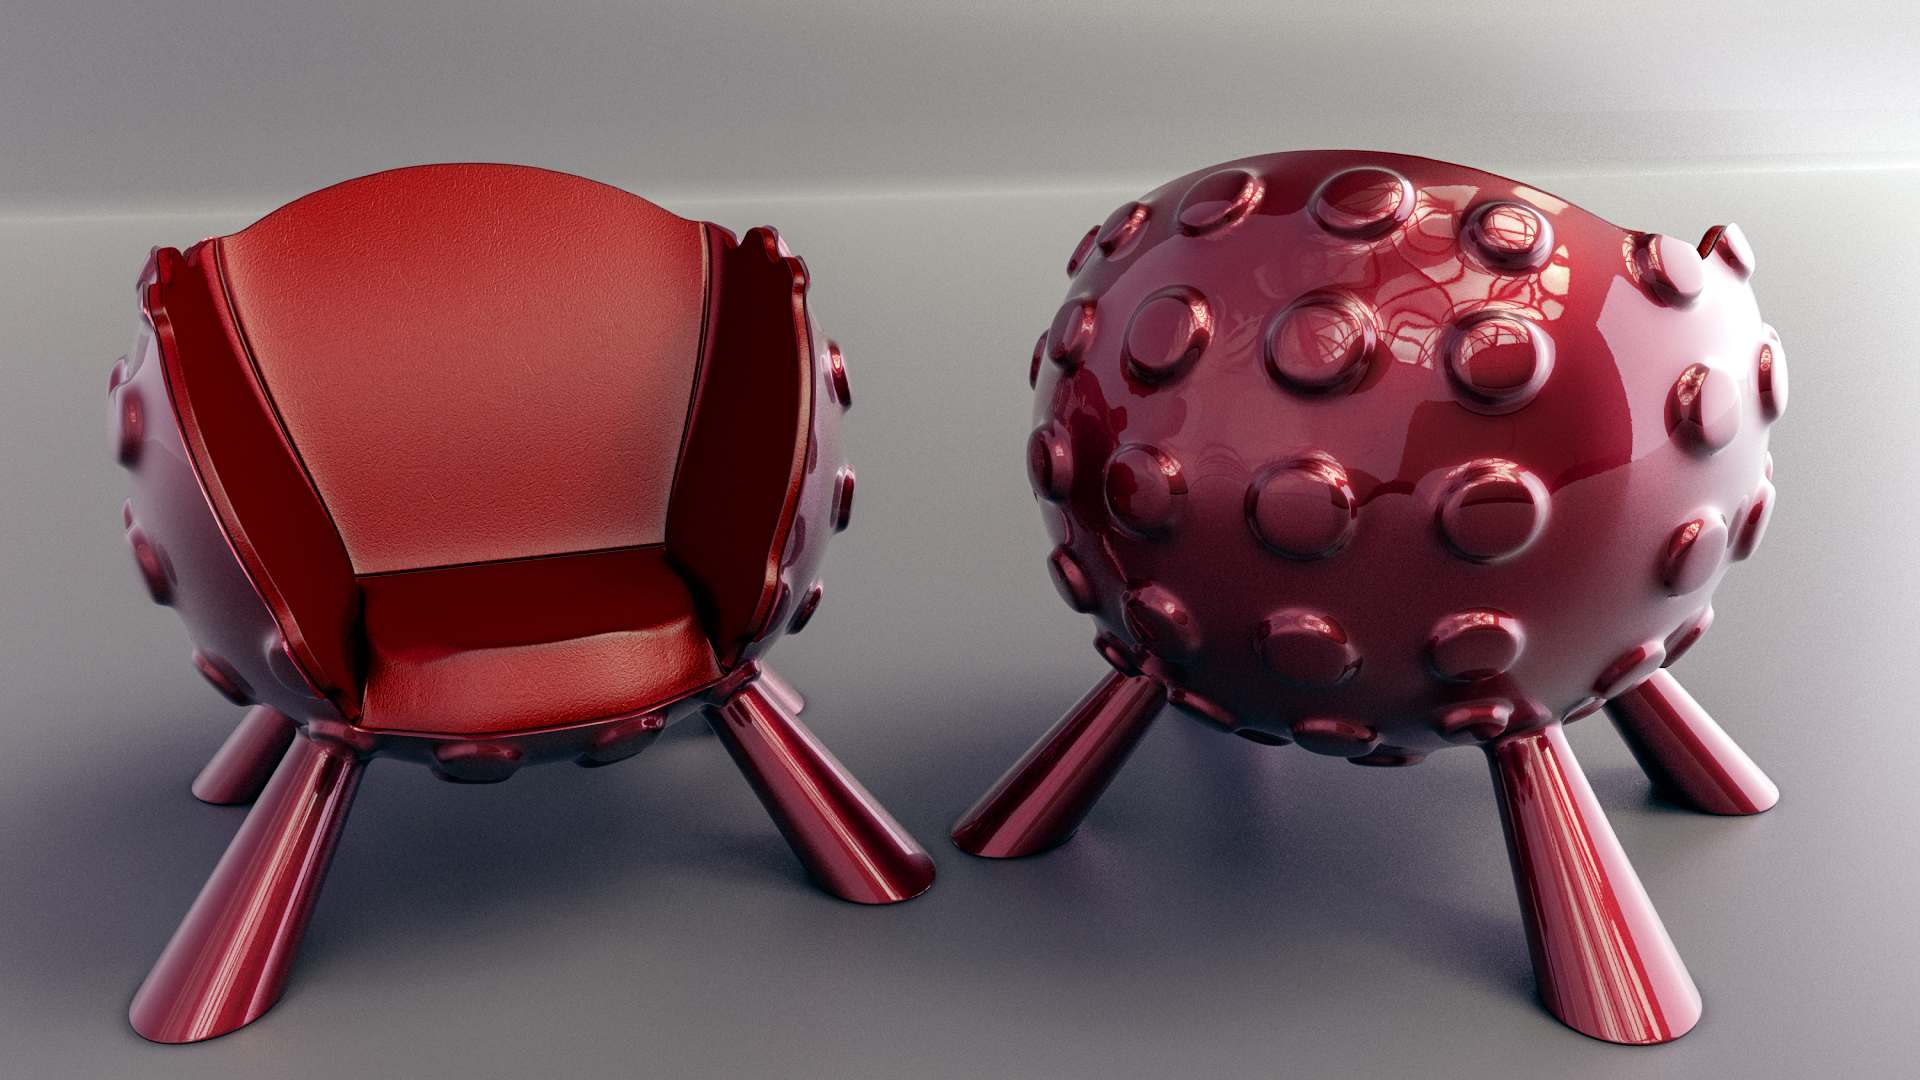 industrialdesign17 Industrial Design Modeled and Rendered in Modo by Mike Grauer